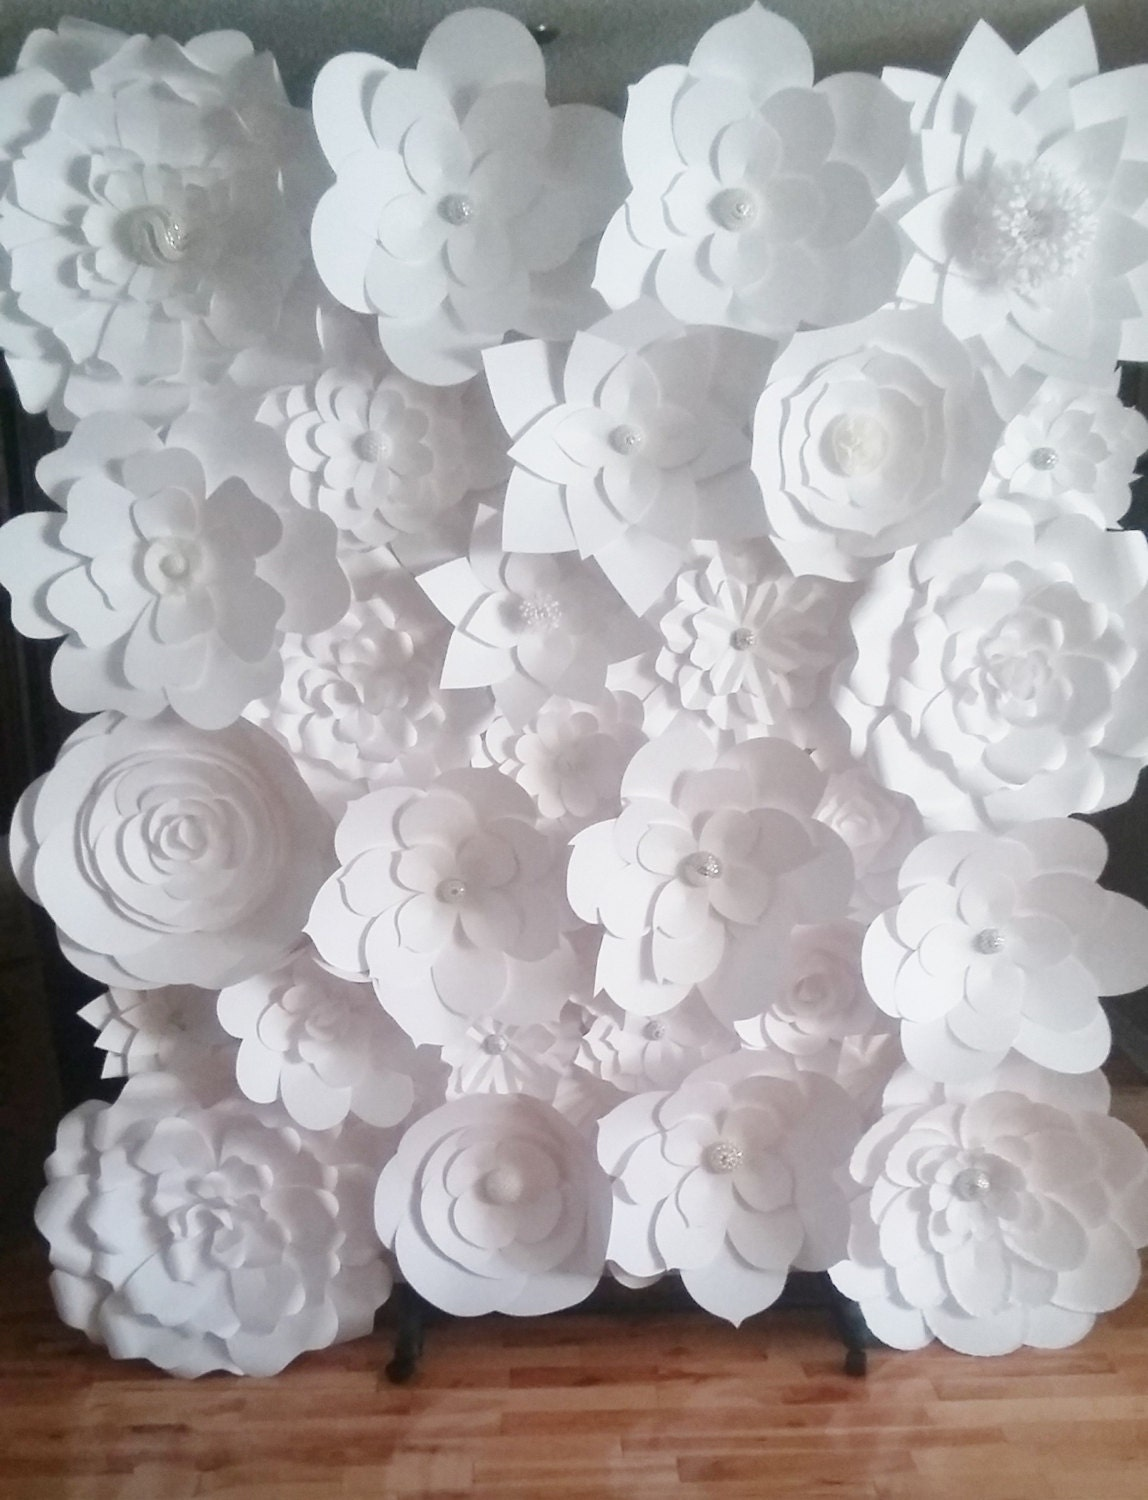 Paper flower wall diy yelomdiffusion diy paper flower wall the knot mightylinksfo